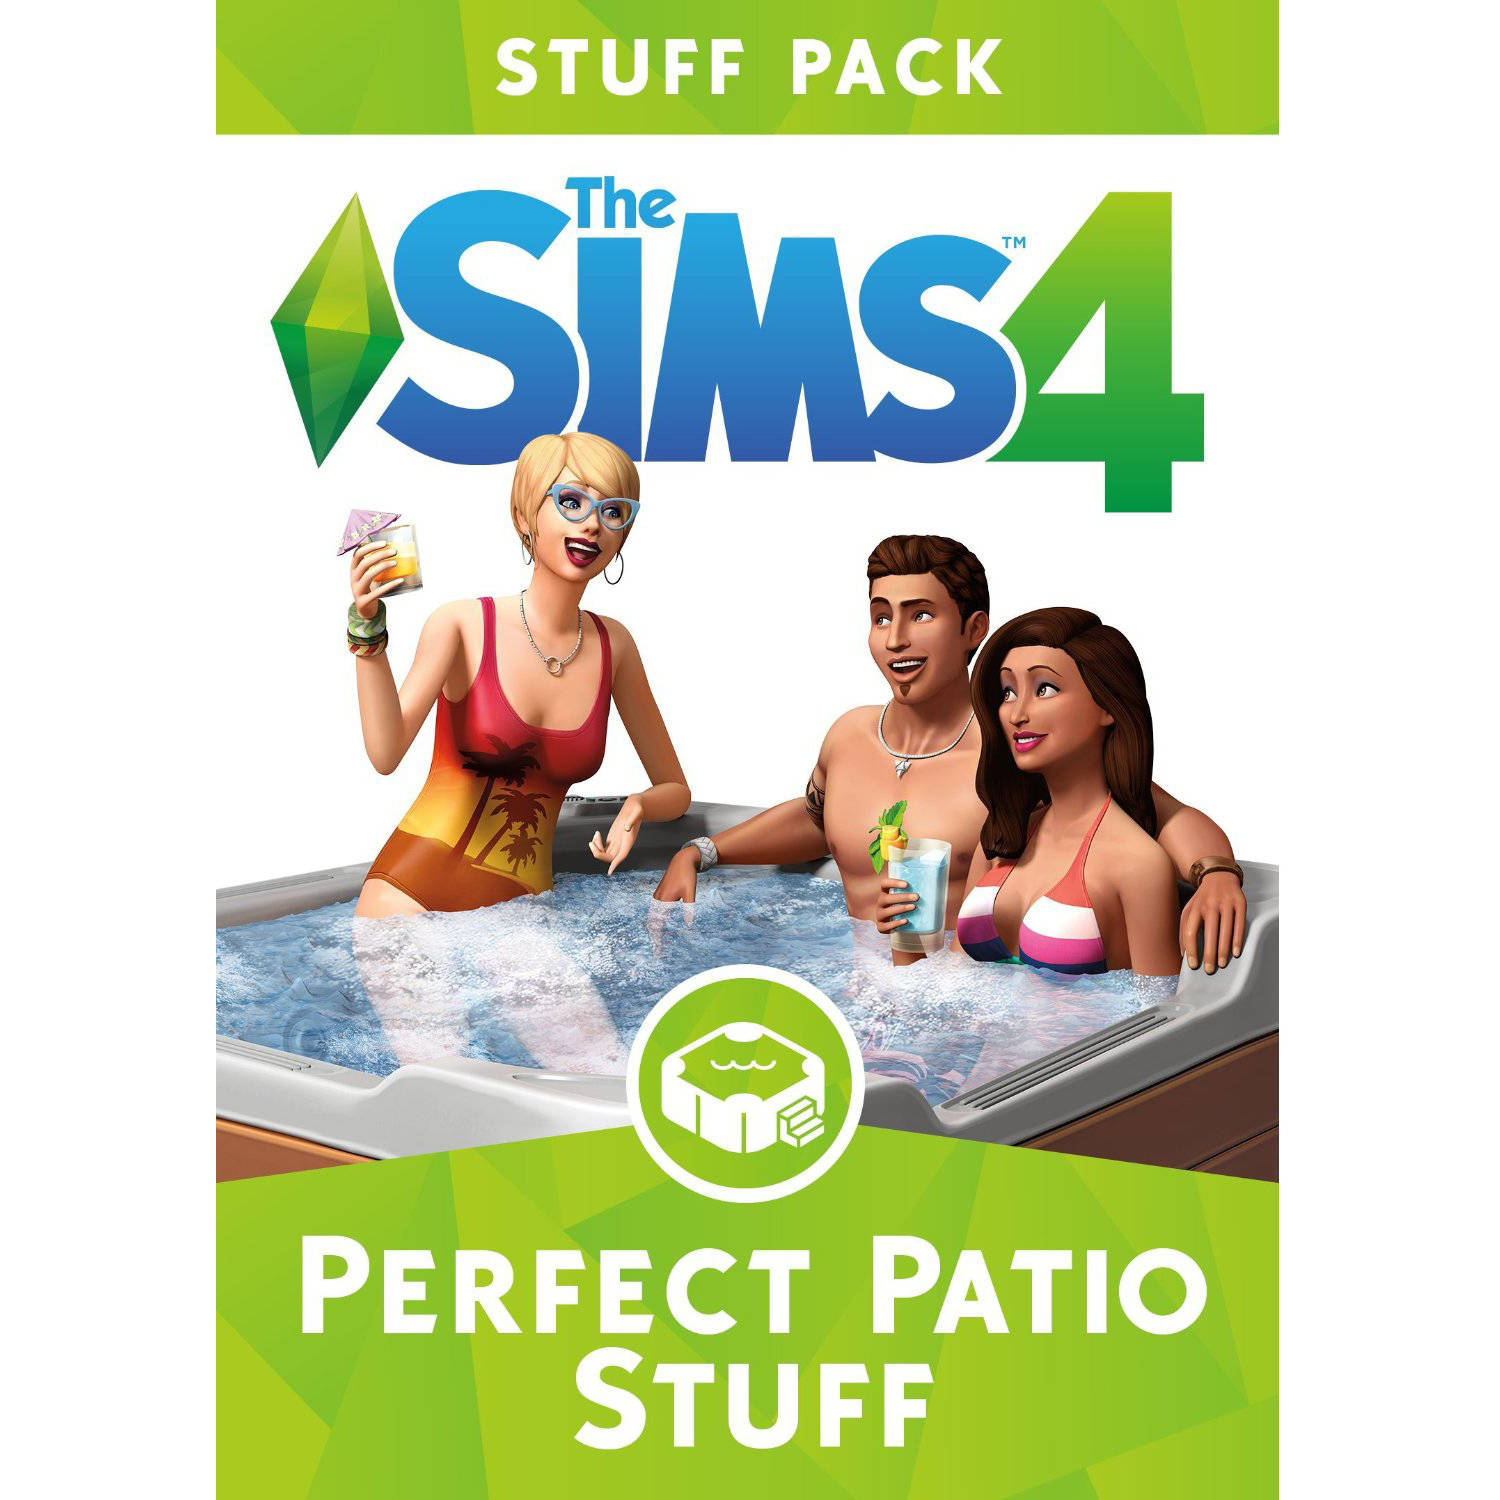 The Sims 4 Perfect Patio Stuff Pack (Digital Code) Electronic Arts